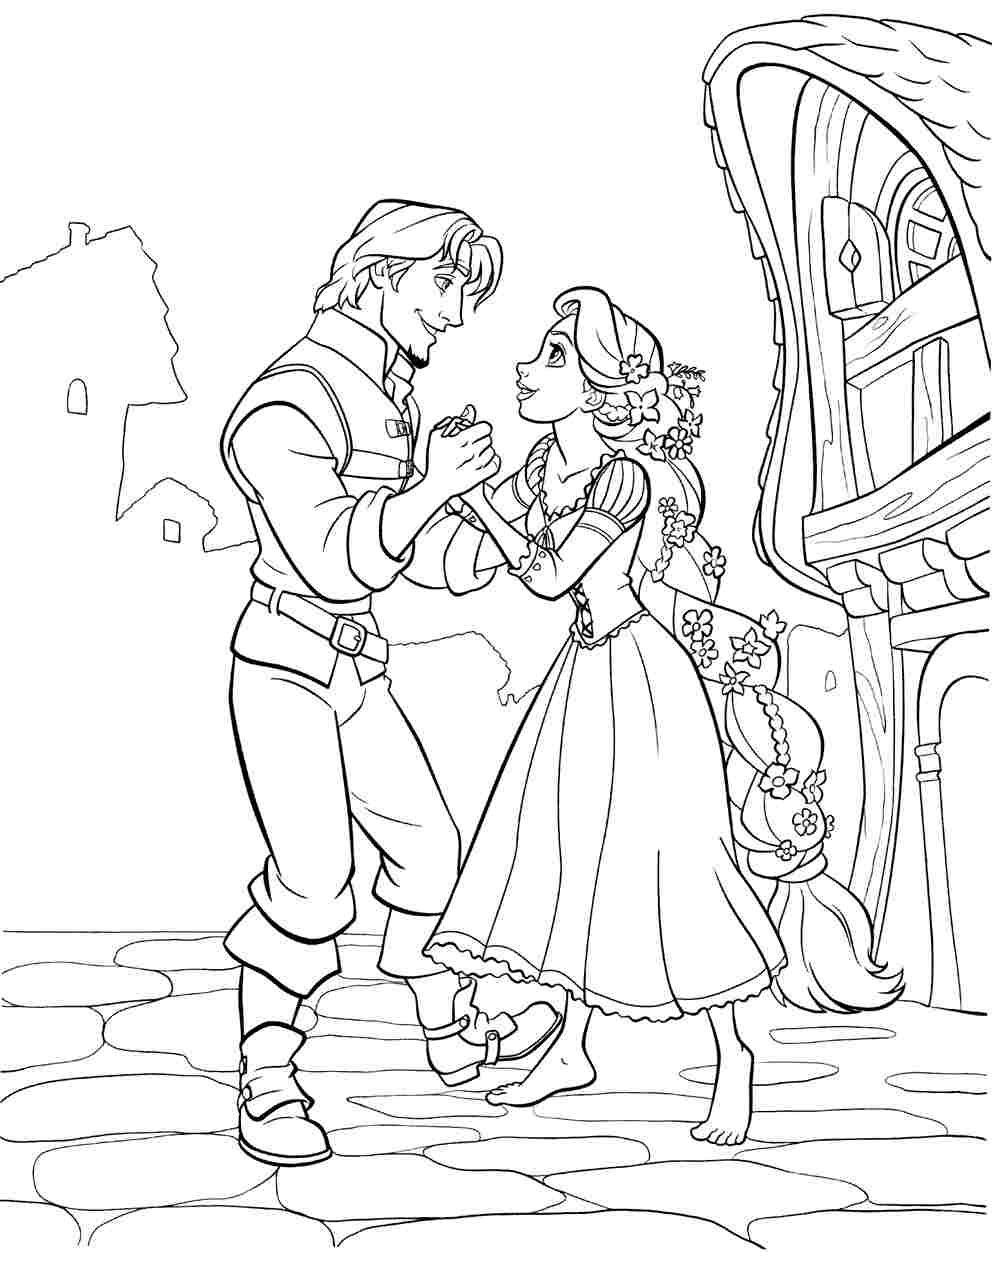 Rapunzel Ausmalbilder Ausdrucken : Disney Princess Tangled Rapunzel Coloring Sheets Free Printable For